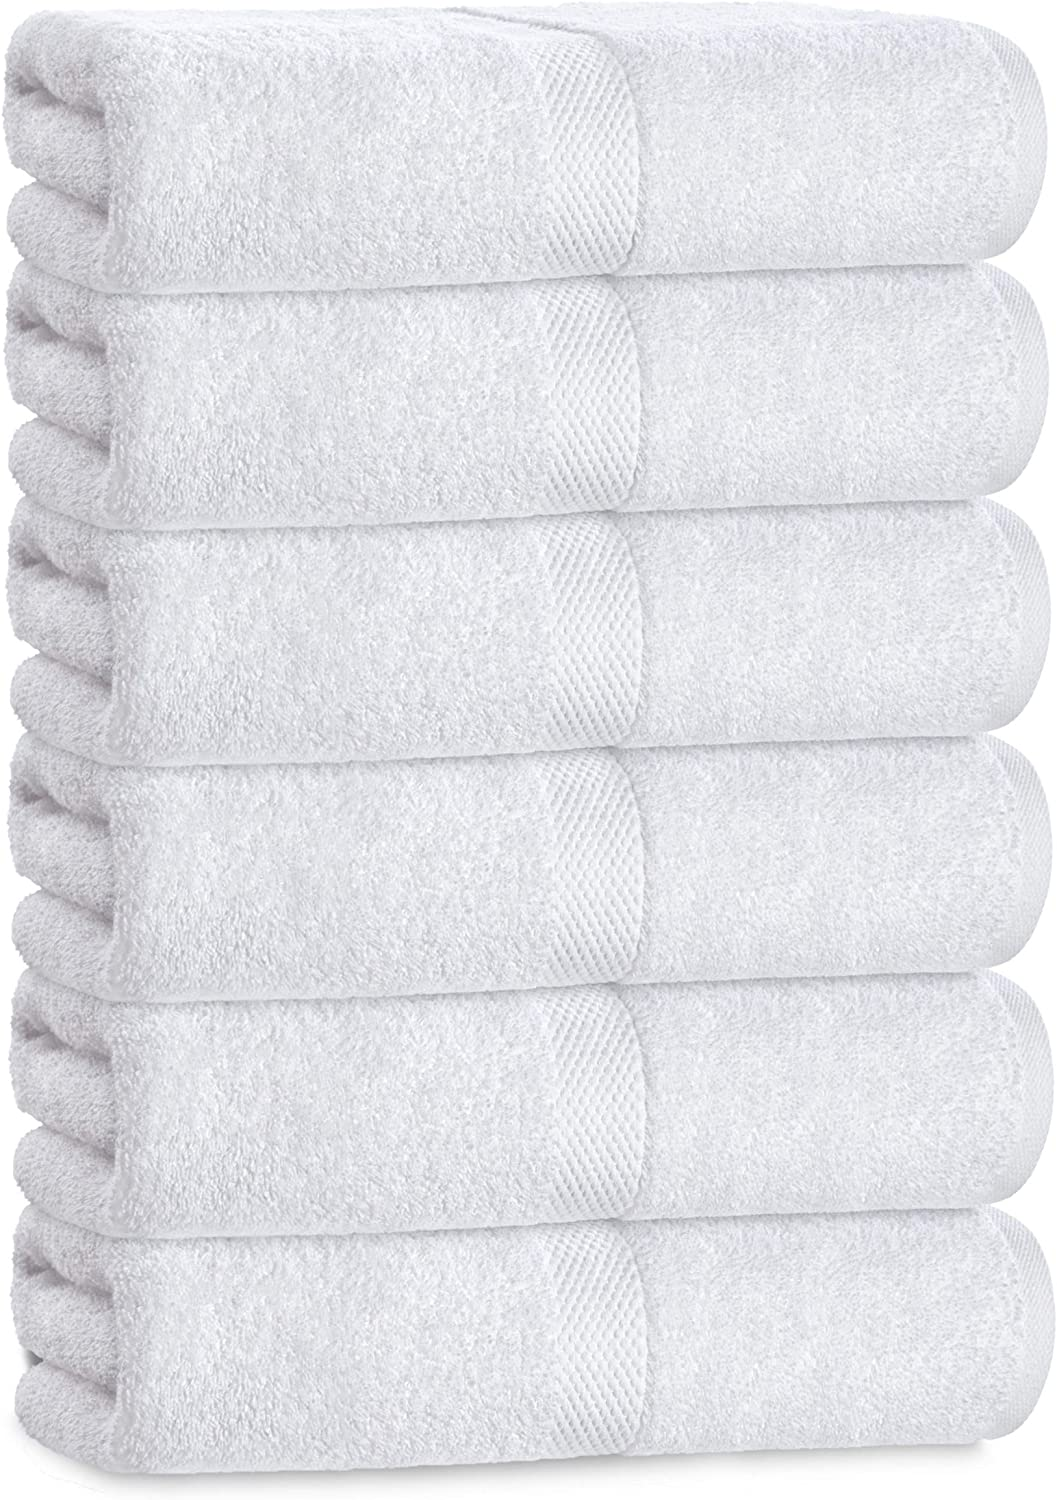 Luxury White Hand Towels - Soft Circlet Egyptian Cotton | Highly Absorbent Hotel spa Bathroom Towel Collection | 16x30 Inch | Set of 6: Kitchen & Dining